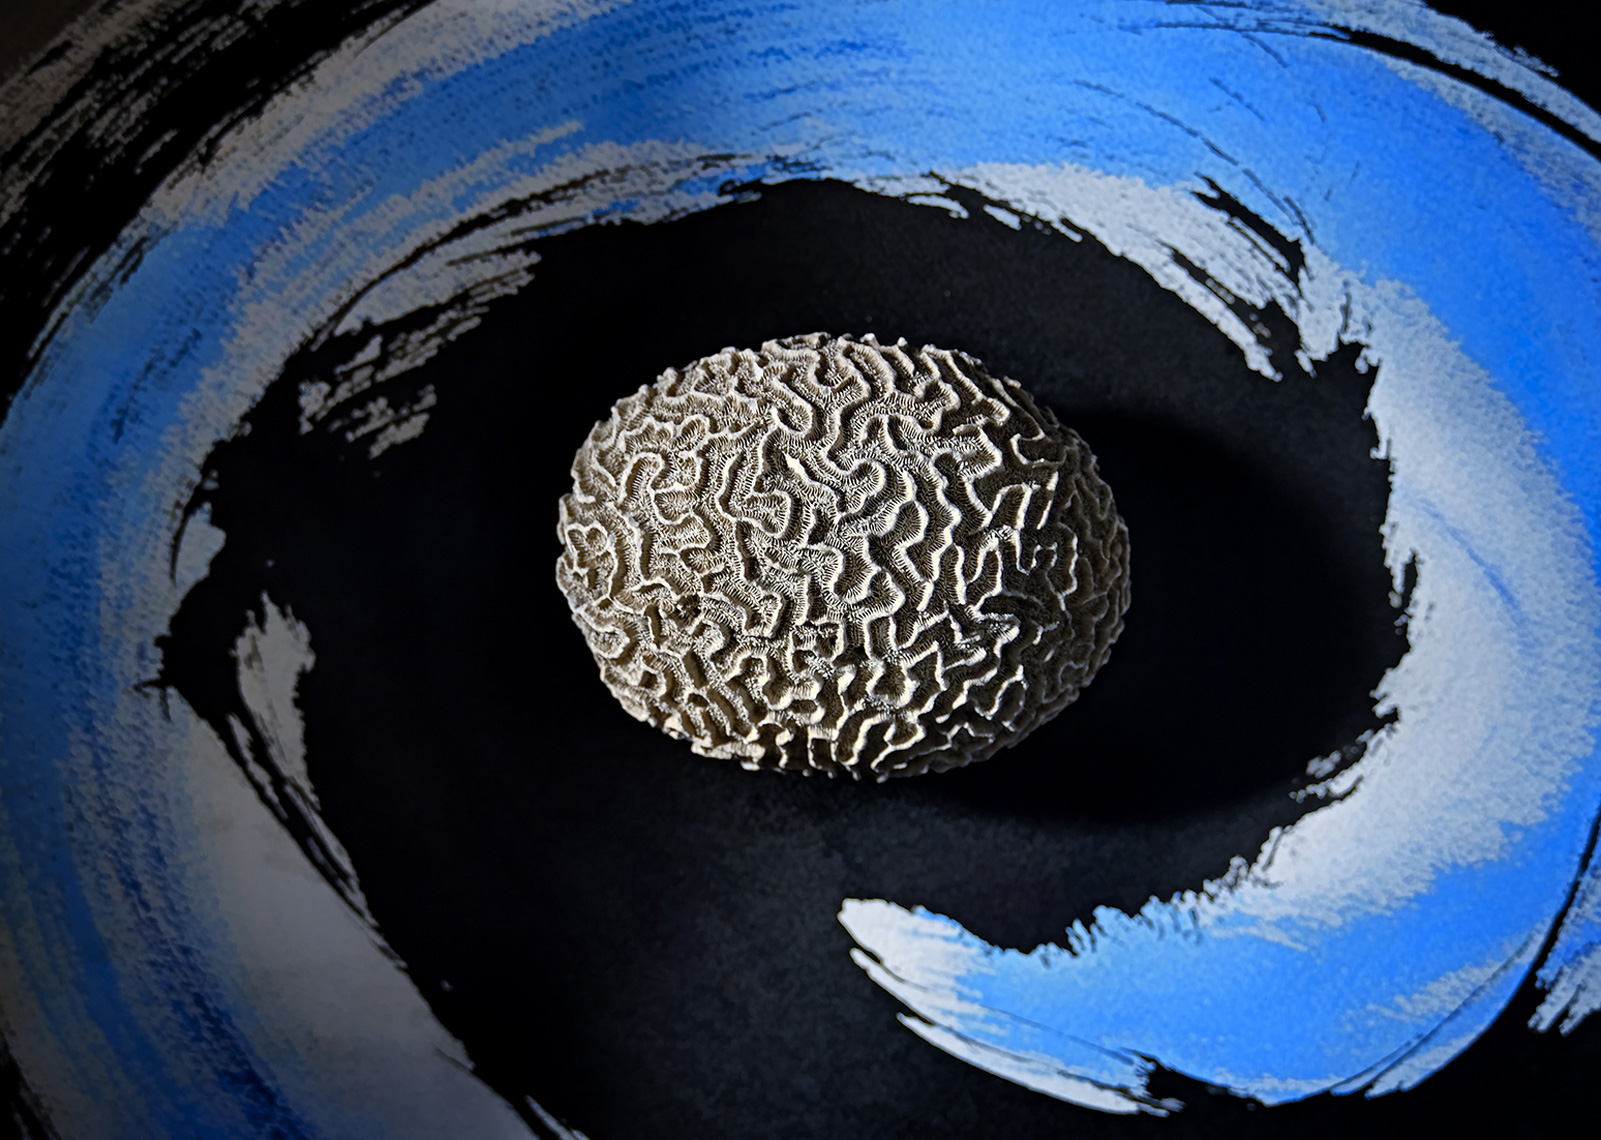 davidhoptman_still-life-photo-STILL LIFE WITH BRAIN CORAL